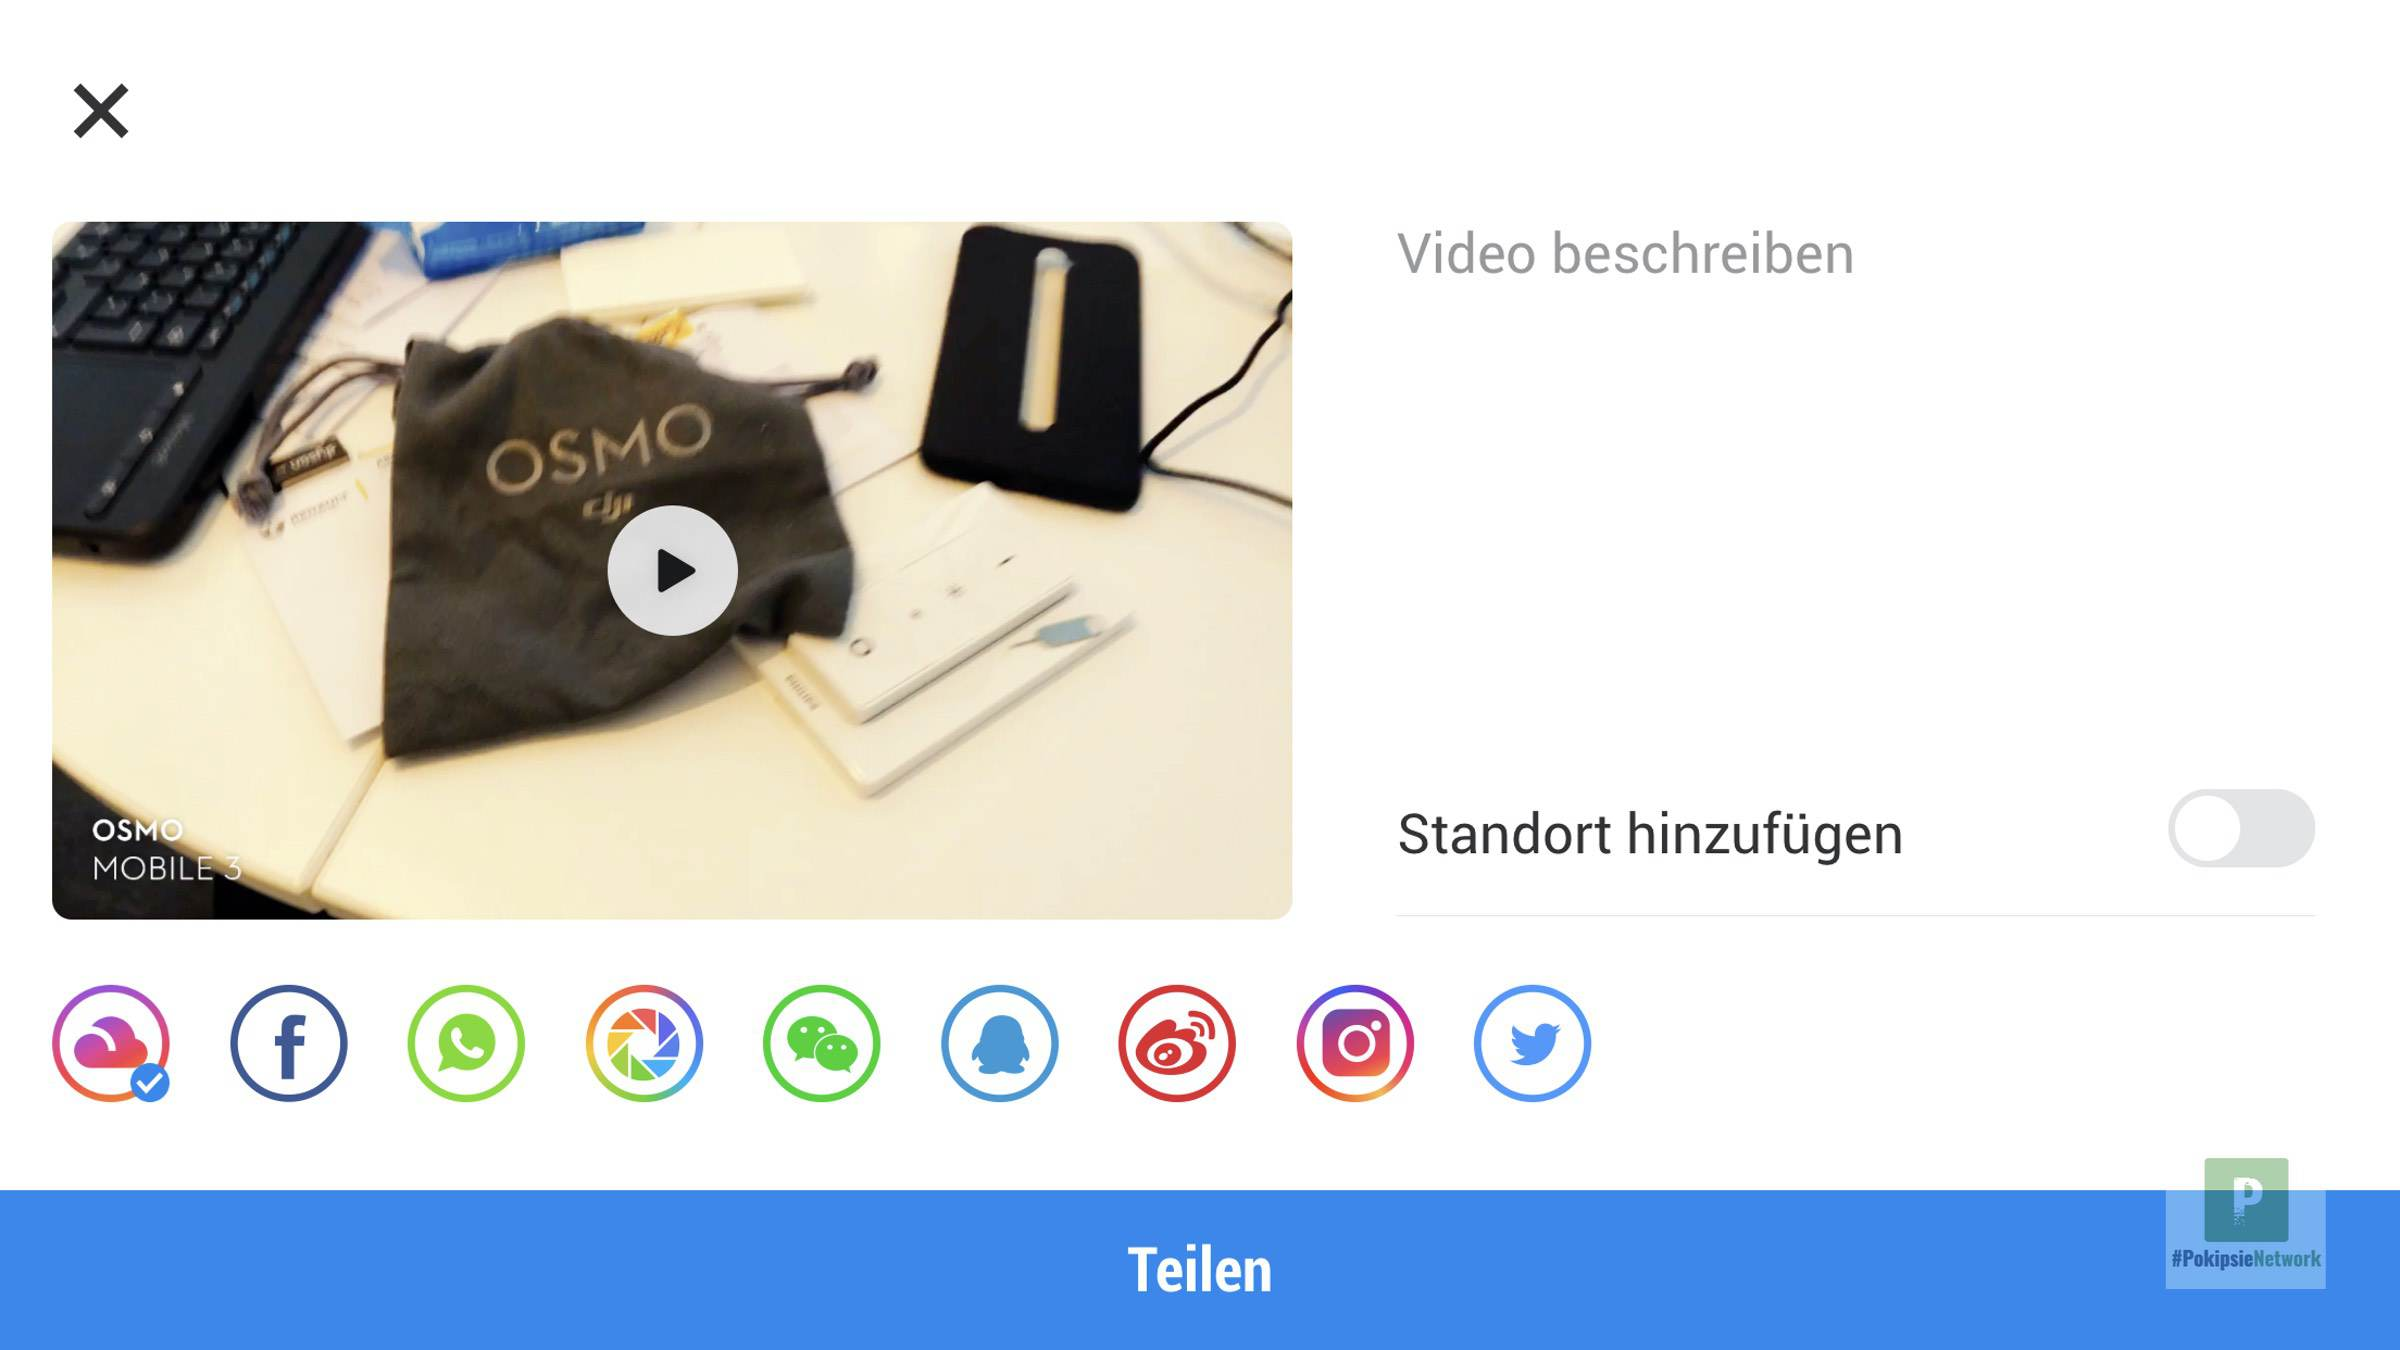 Der Storie-Modus im Osmo Mobile 3